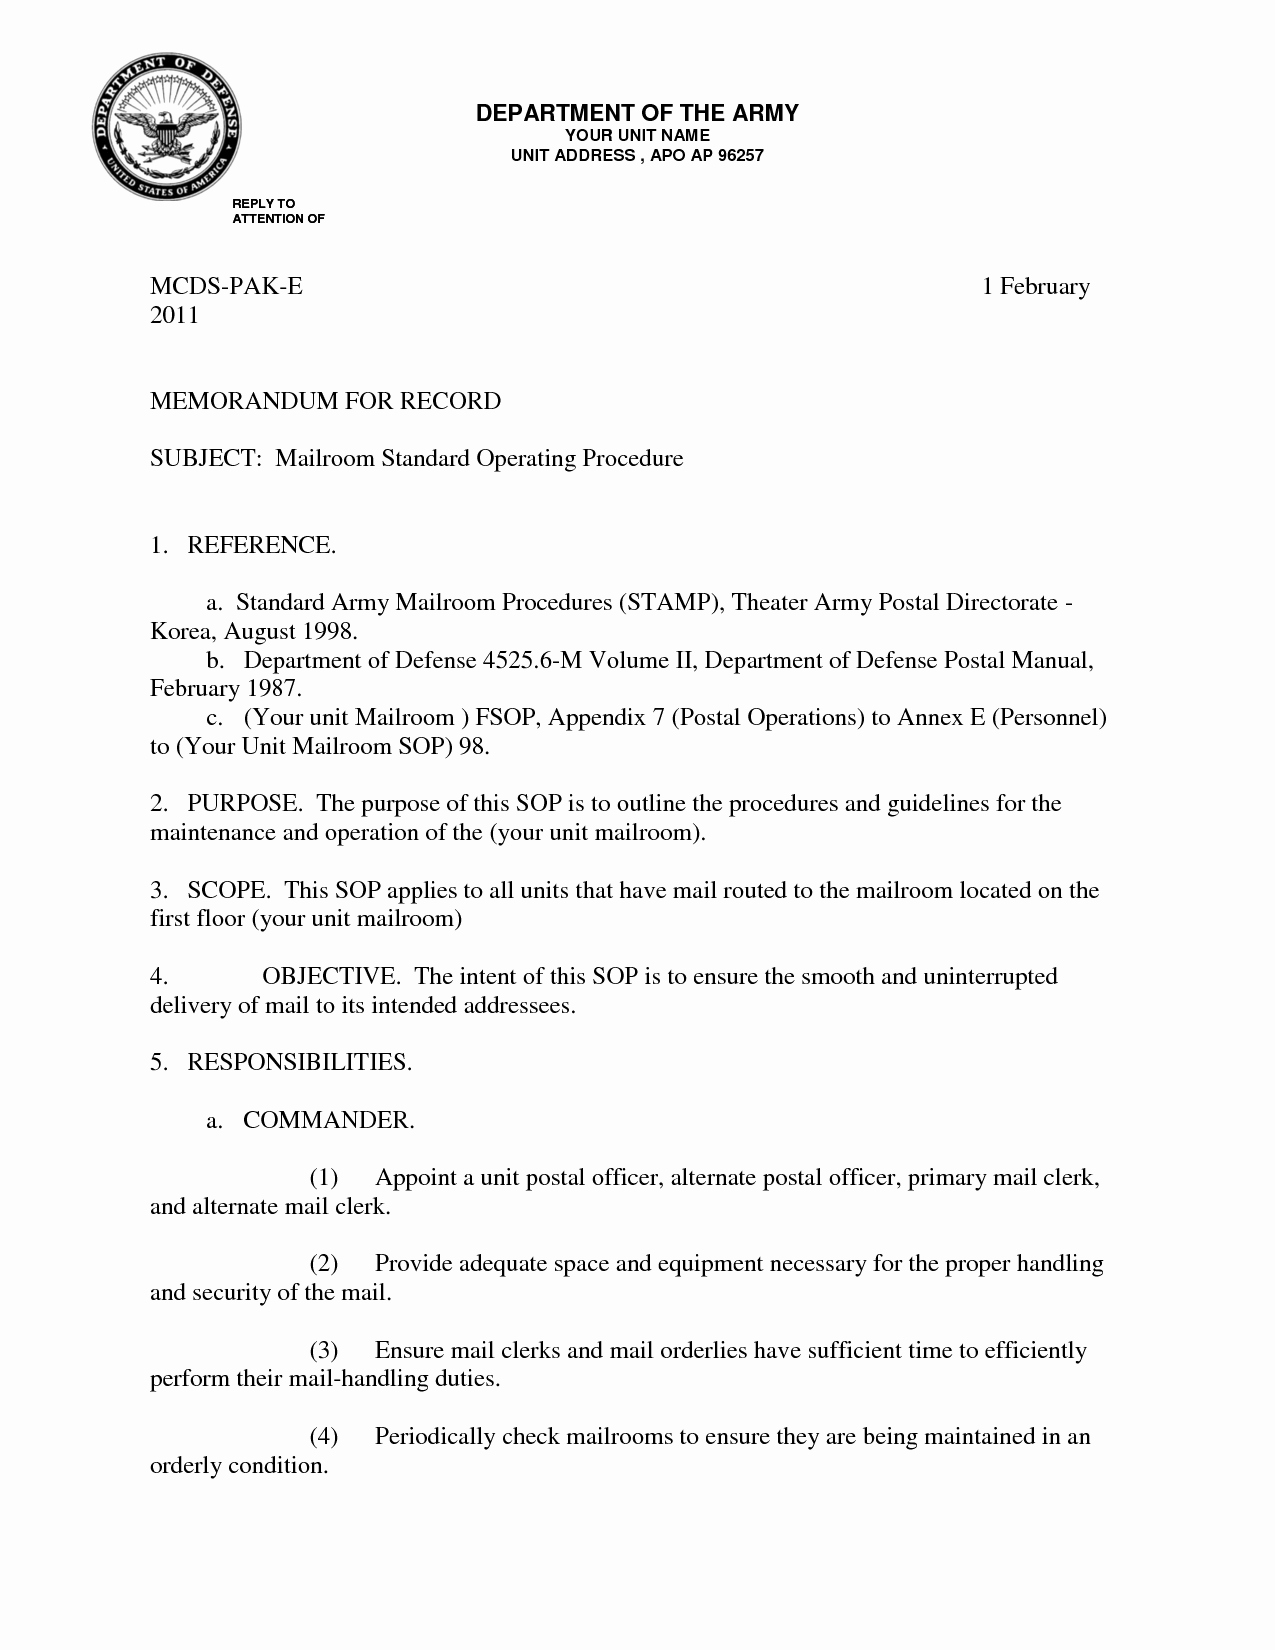 Memo Template for Word Elegant 10 Best Of Army Memo for Record Doc Army